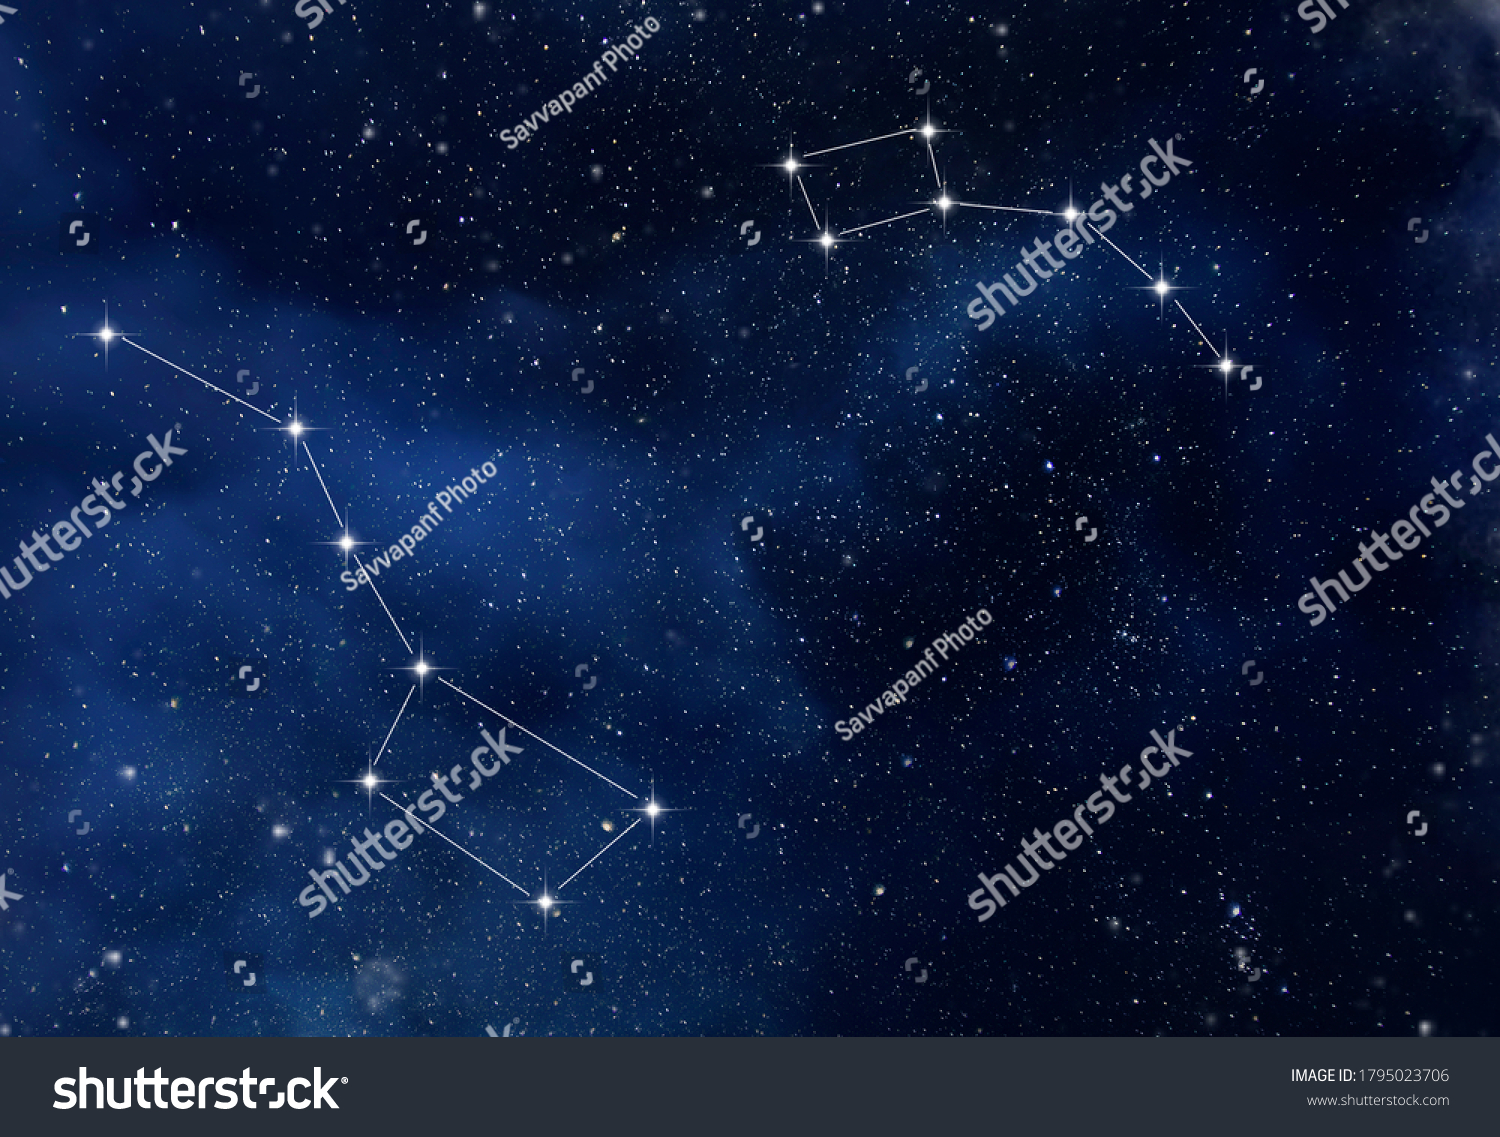 The constellation Ursa Major and Ursa Minor in the starry sky as background #1795023706